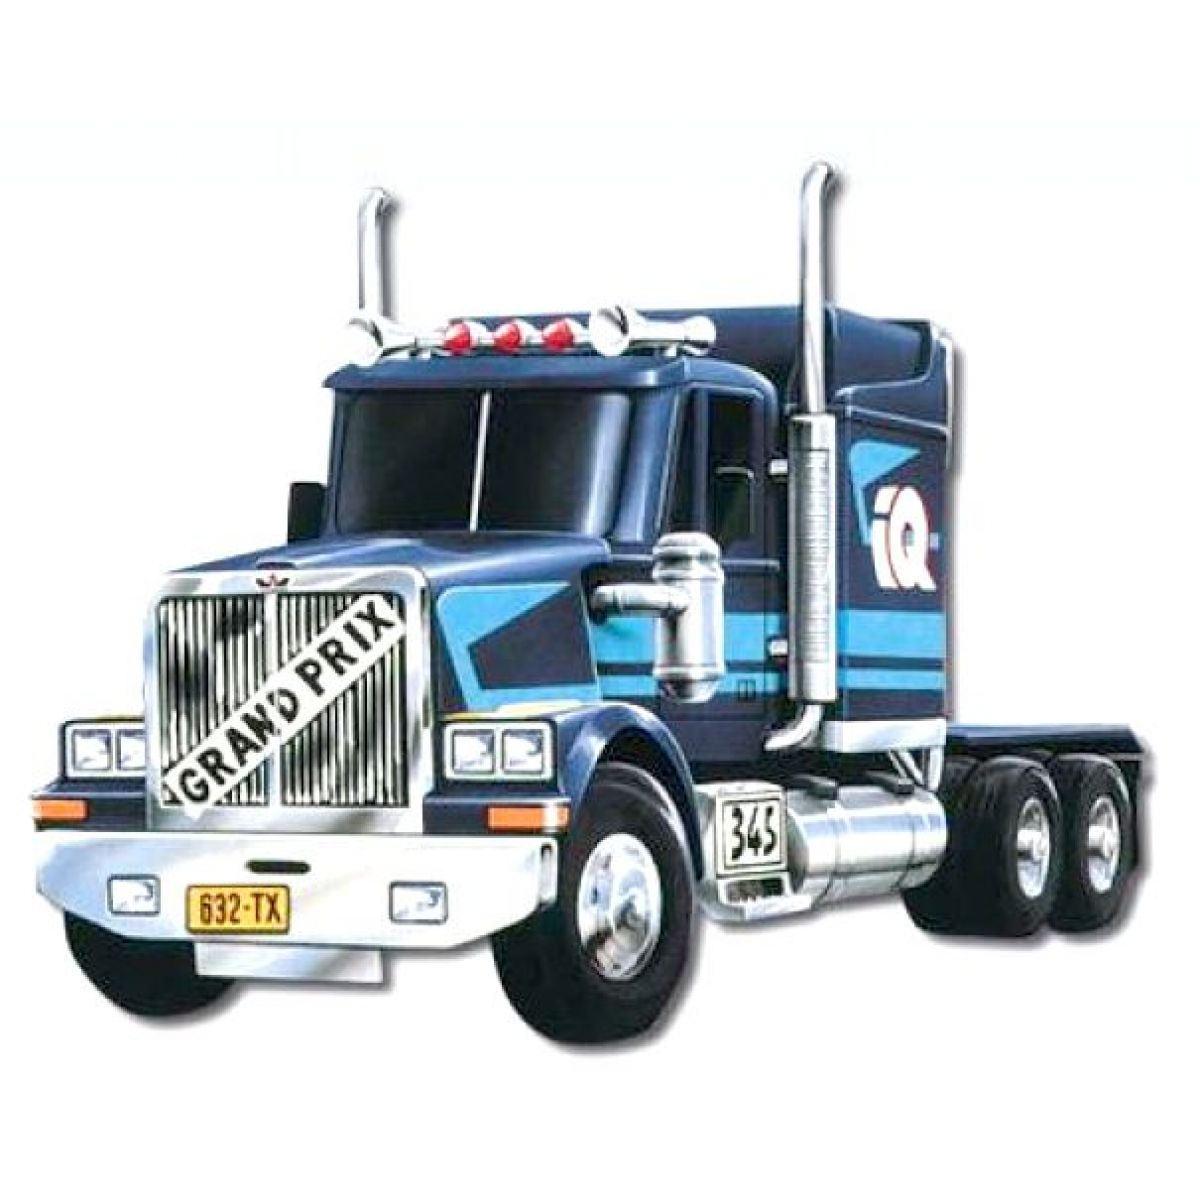 Monti System 43 Racing Truck 1:48